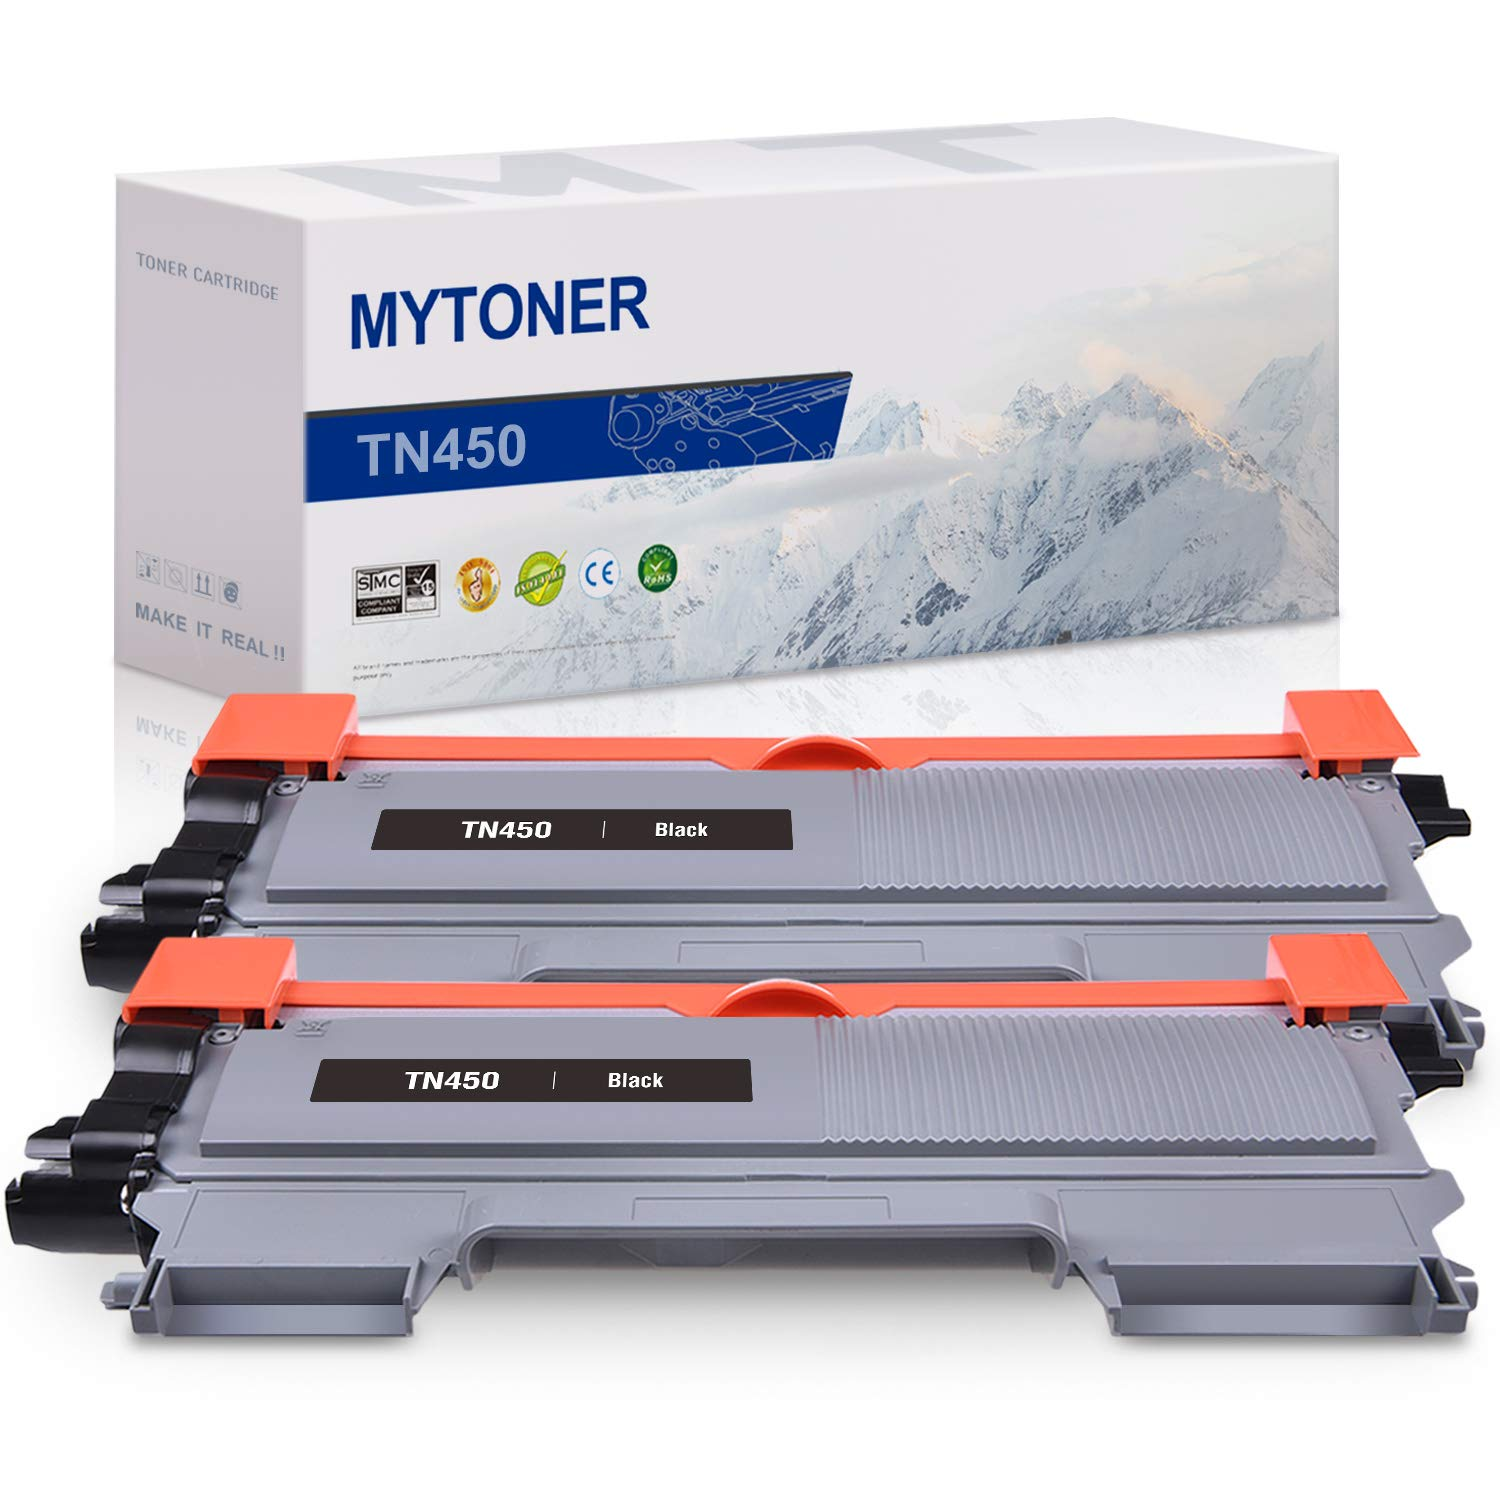 MYTONER Compatible Toner Cartridge Replacement for Brother TN450 TN-450 TN420 TN-420 High Yield Toner Printer Ink (Black, 2-Pack)